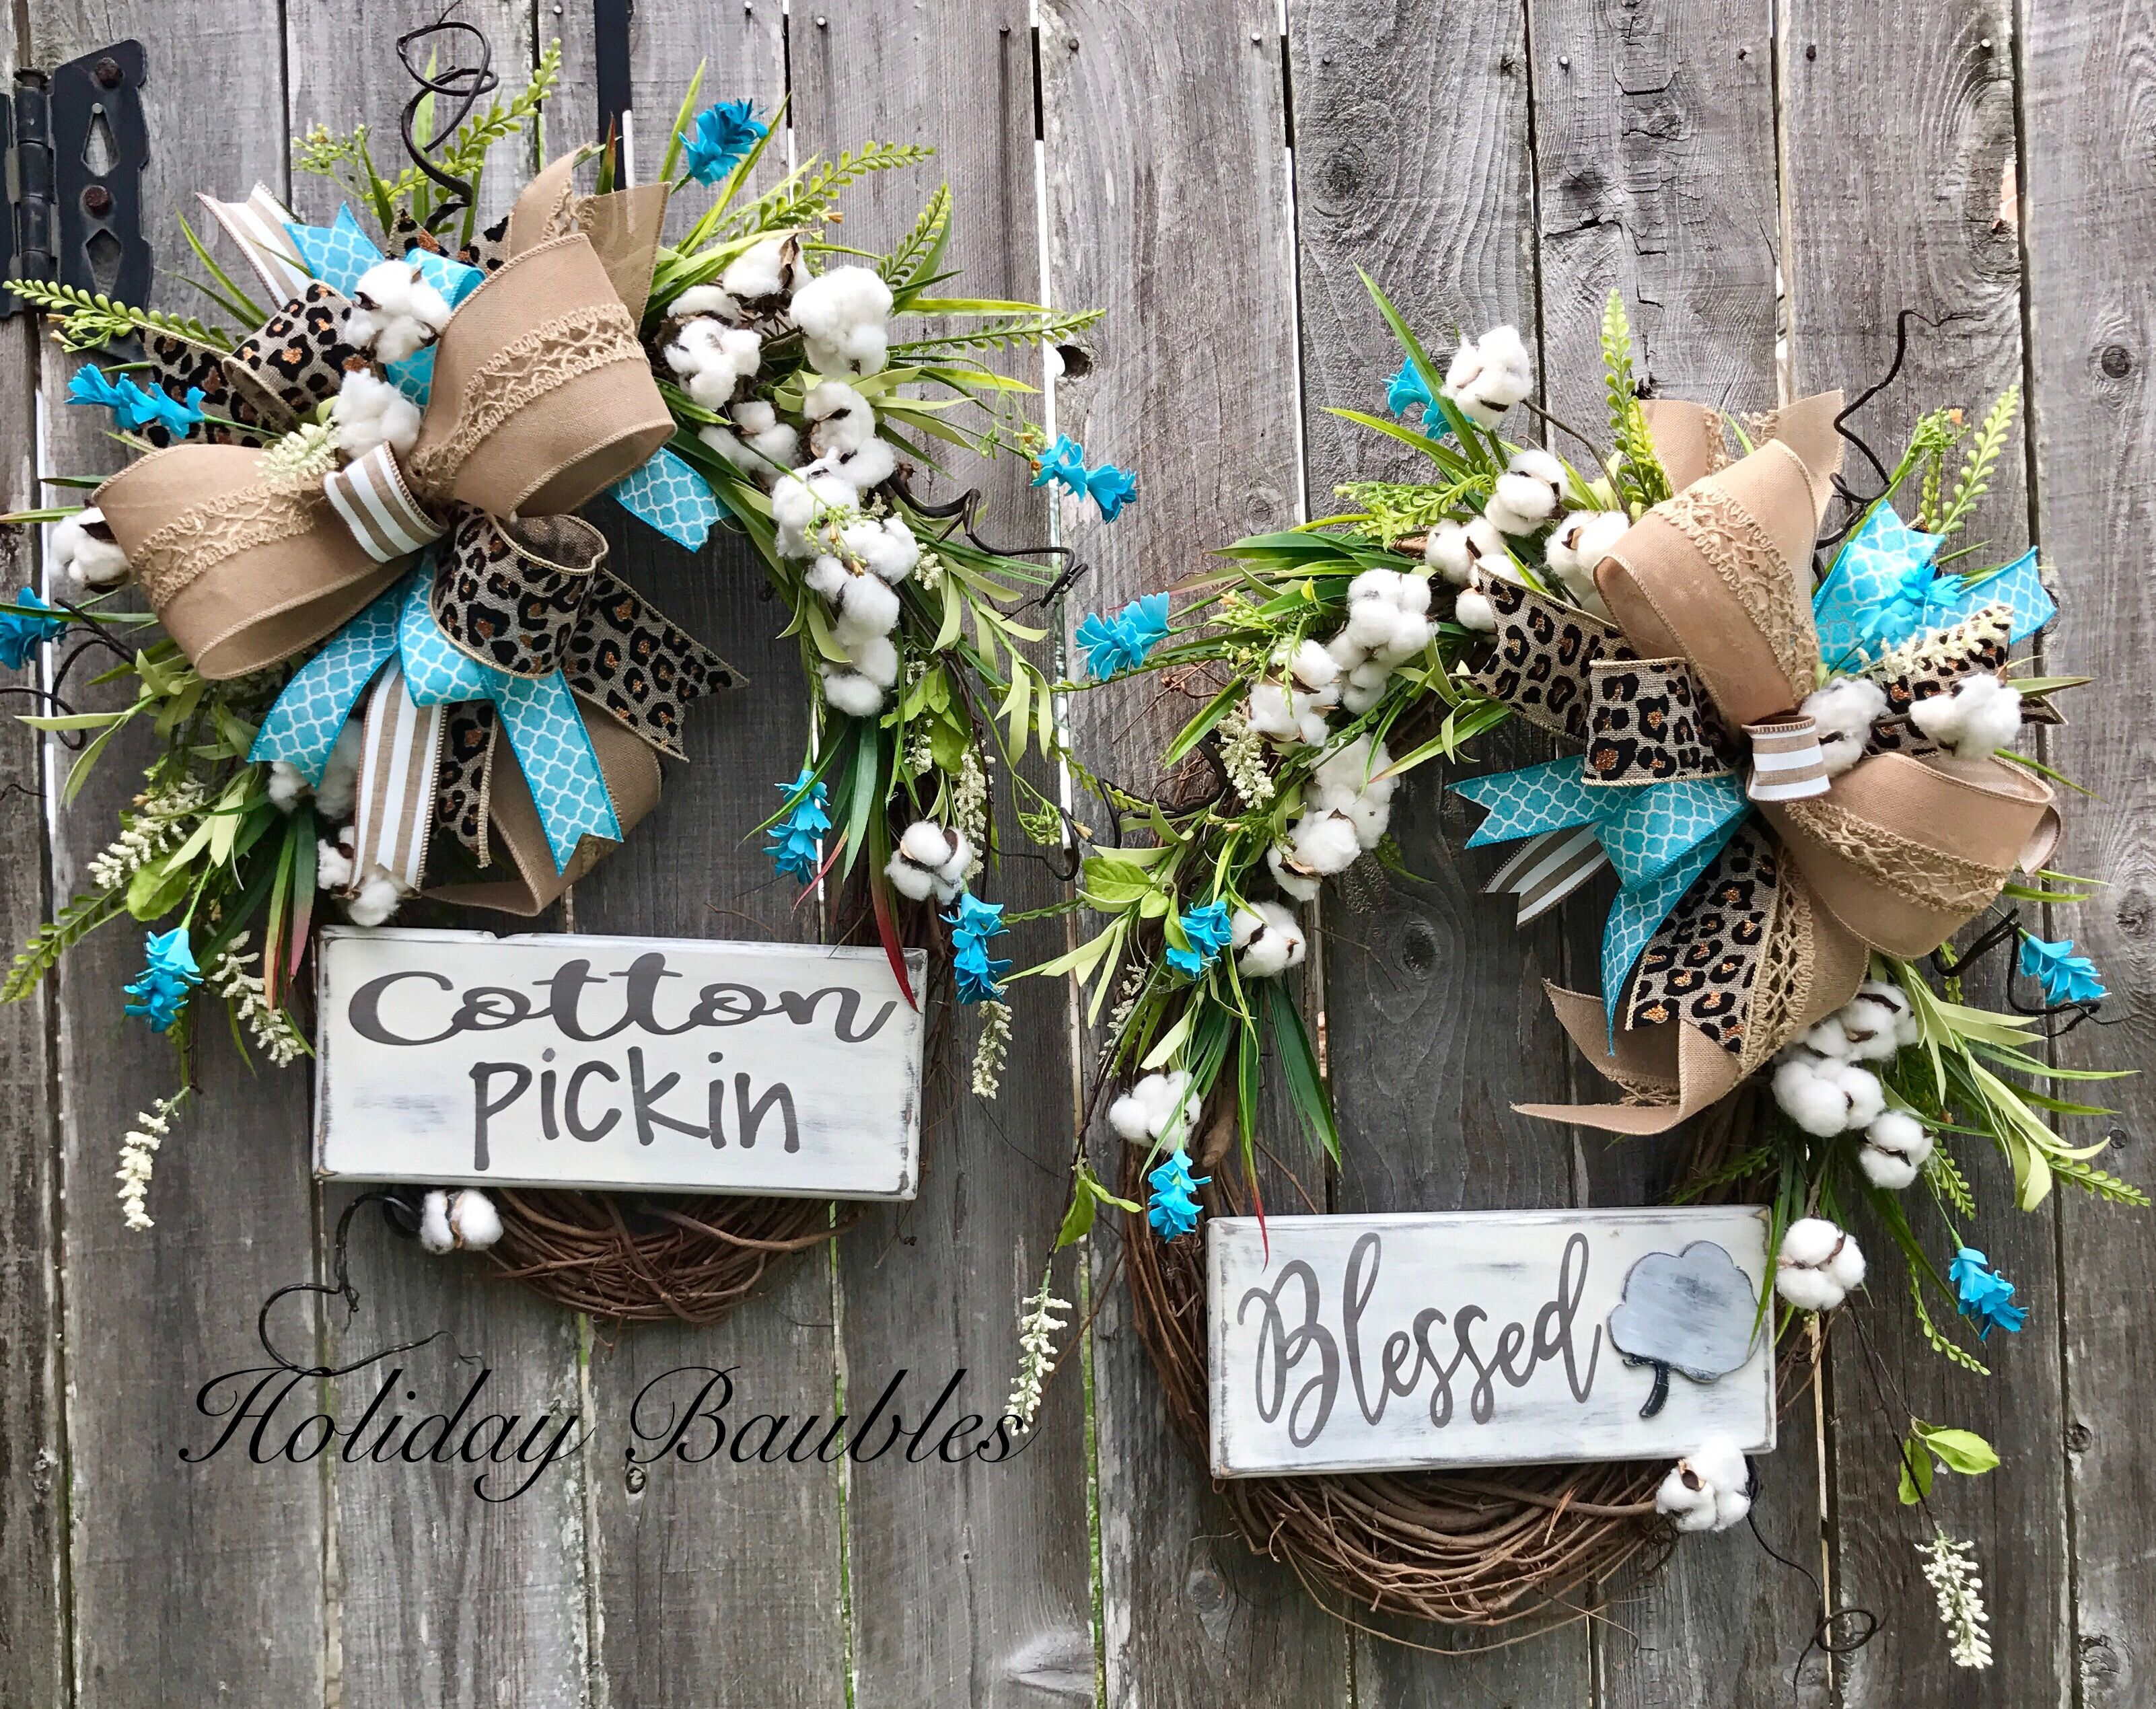 Cotton Pickin Blessed Double Front Doors By Holiday Baubles